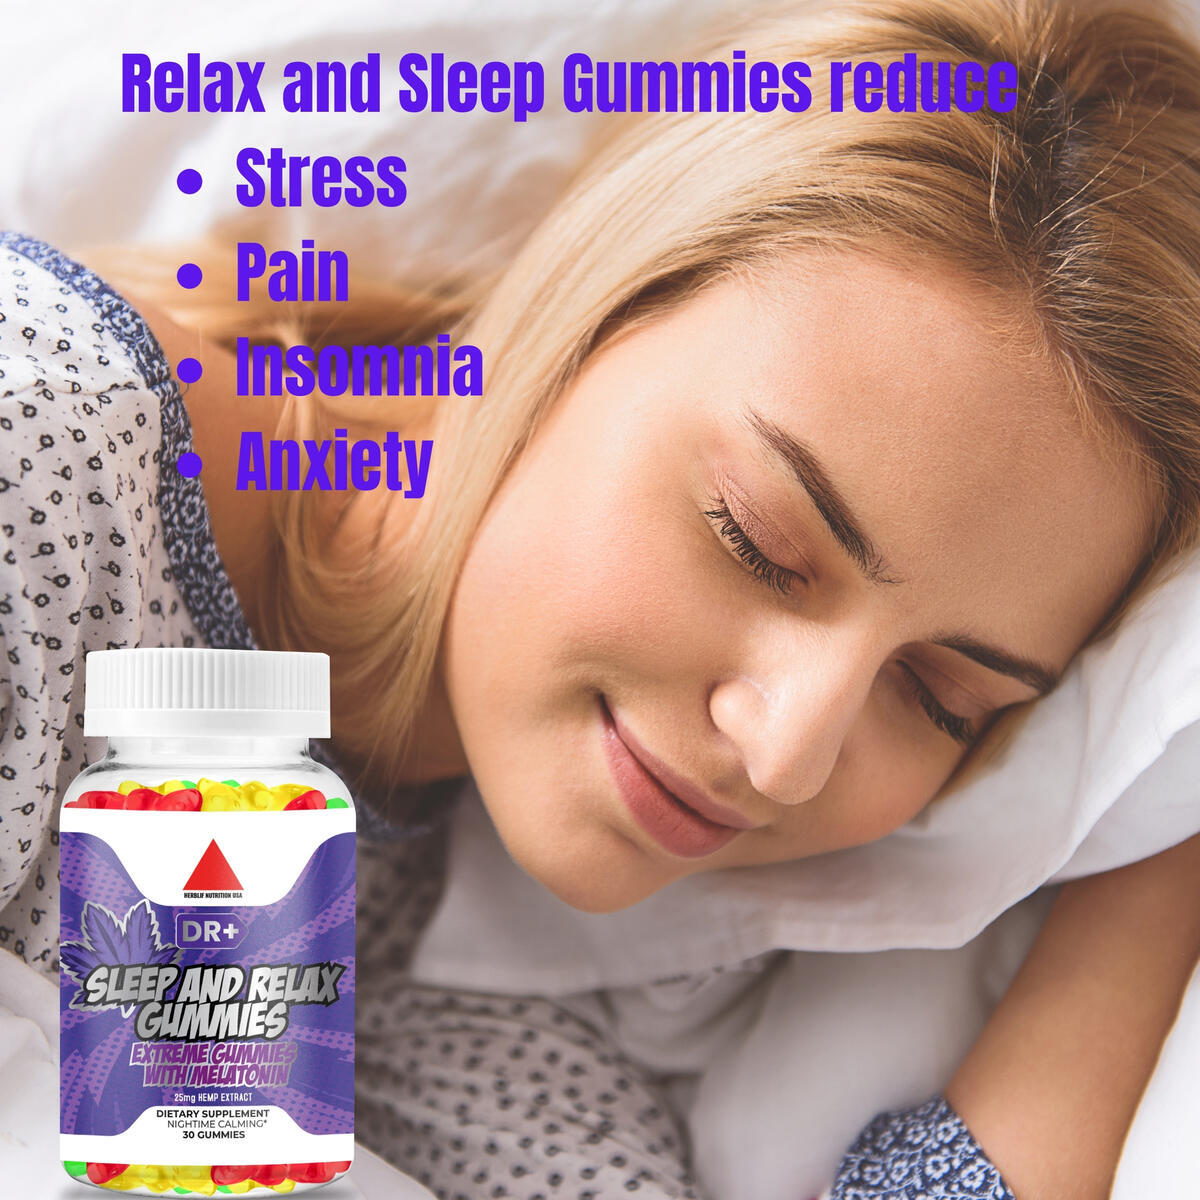 Relax and Sleep Gummies Stress, Insomnia Anxiety Relief Tasty Relaxing Premium Herbal Extract Mood Immune Support Omega 3-6-9 Complex Nighttime Calming & Sleep